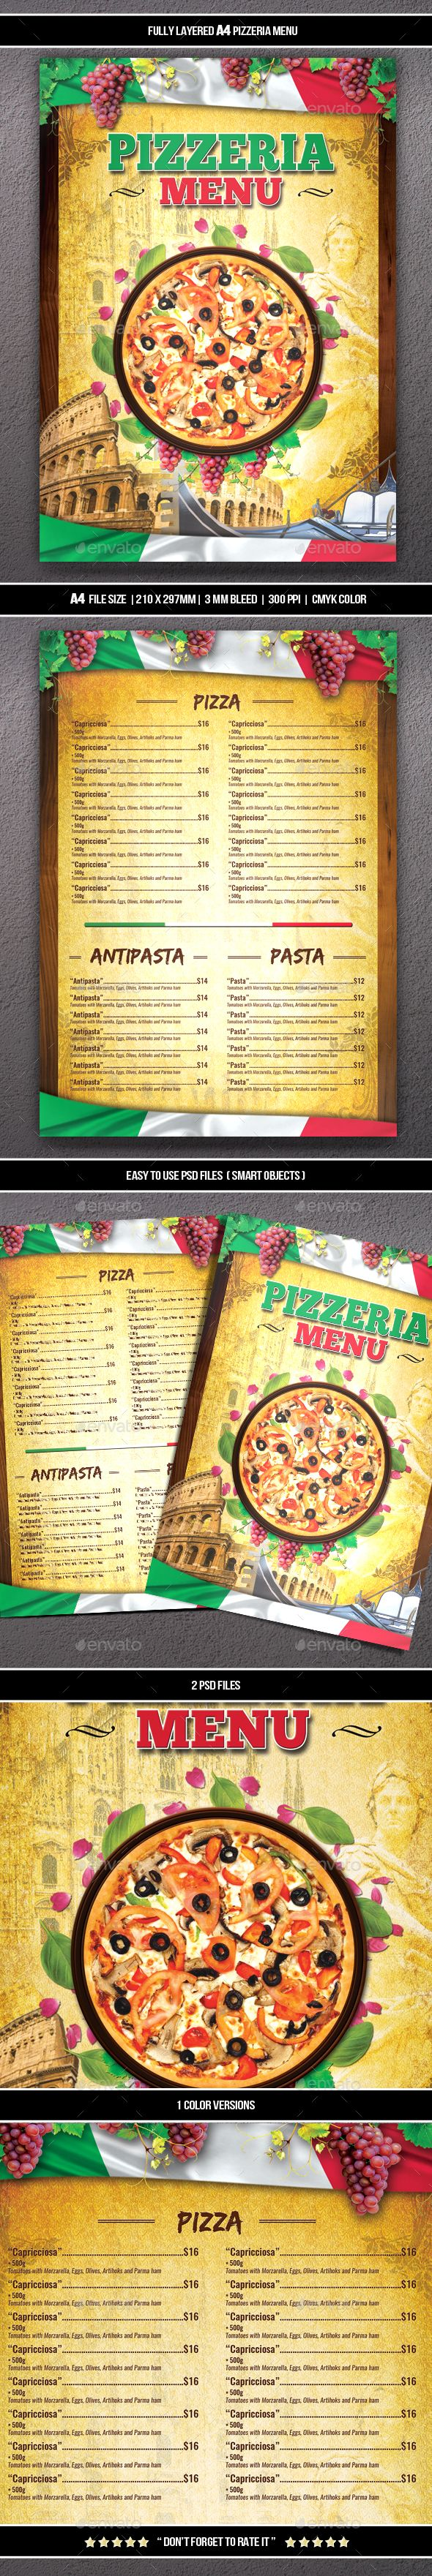 #Pizzeria Menu 2 (A4) - #Food Menus Print Templates